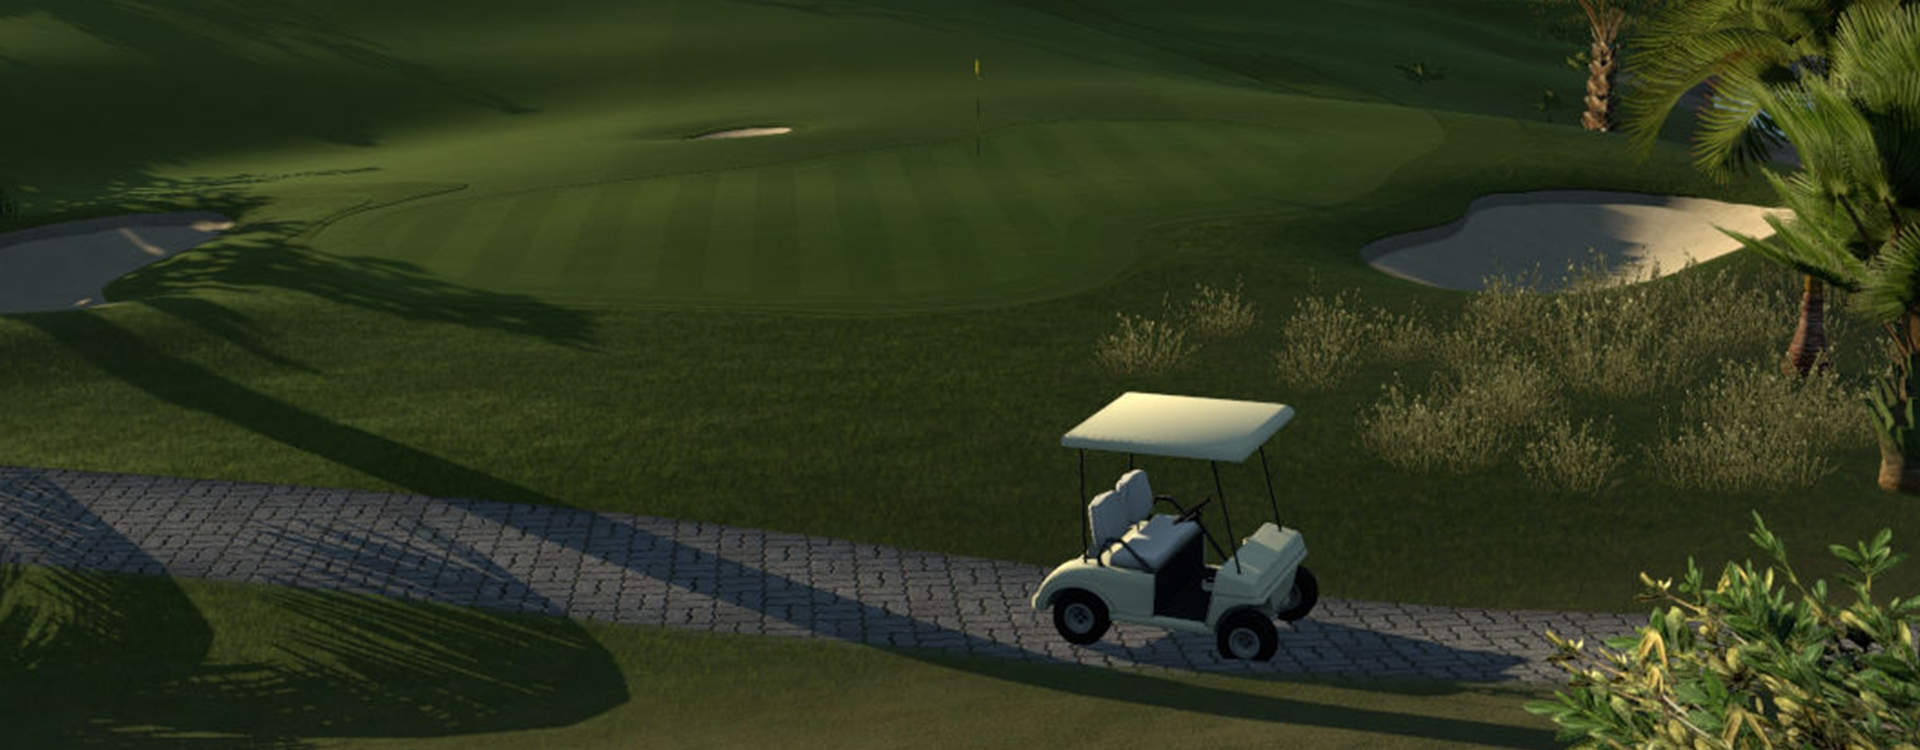 Mobiele-Golf-Simulator